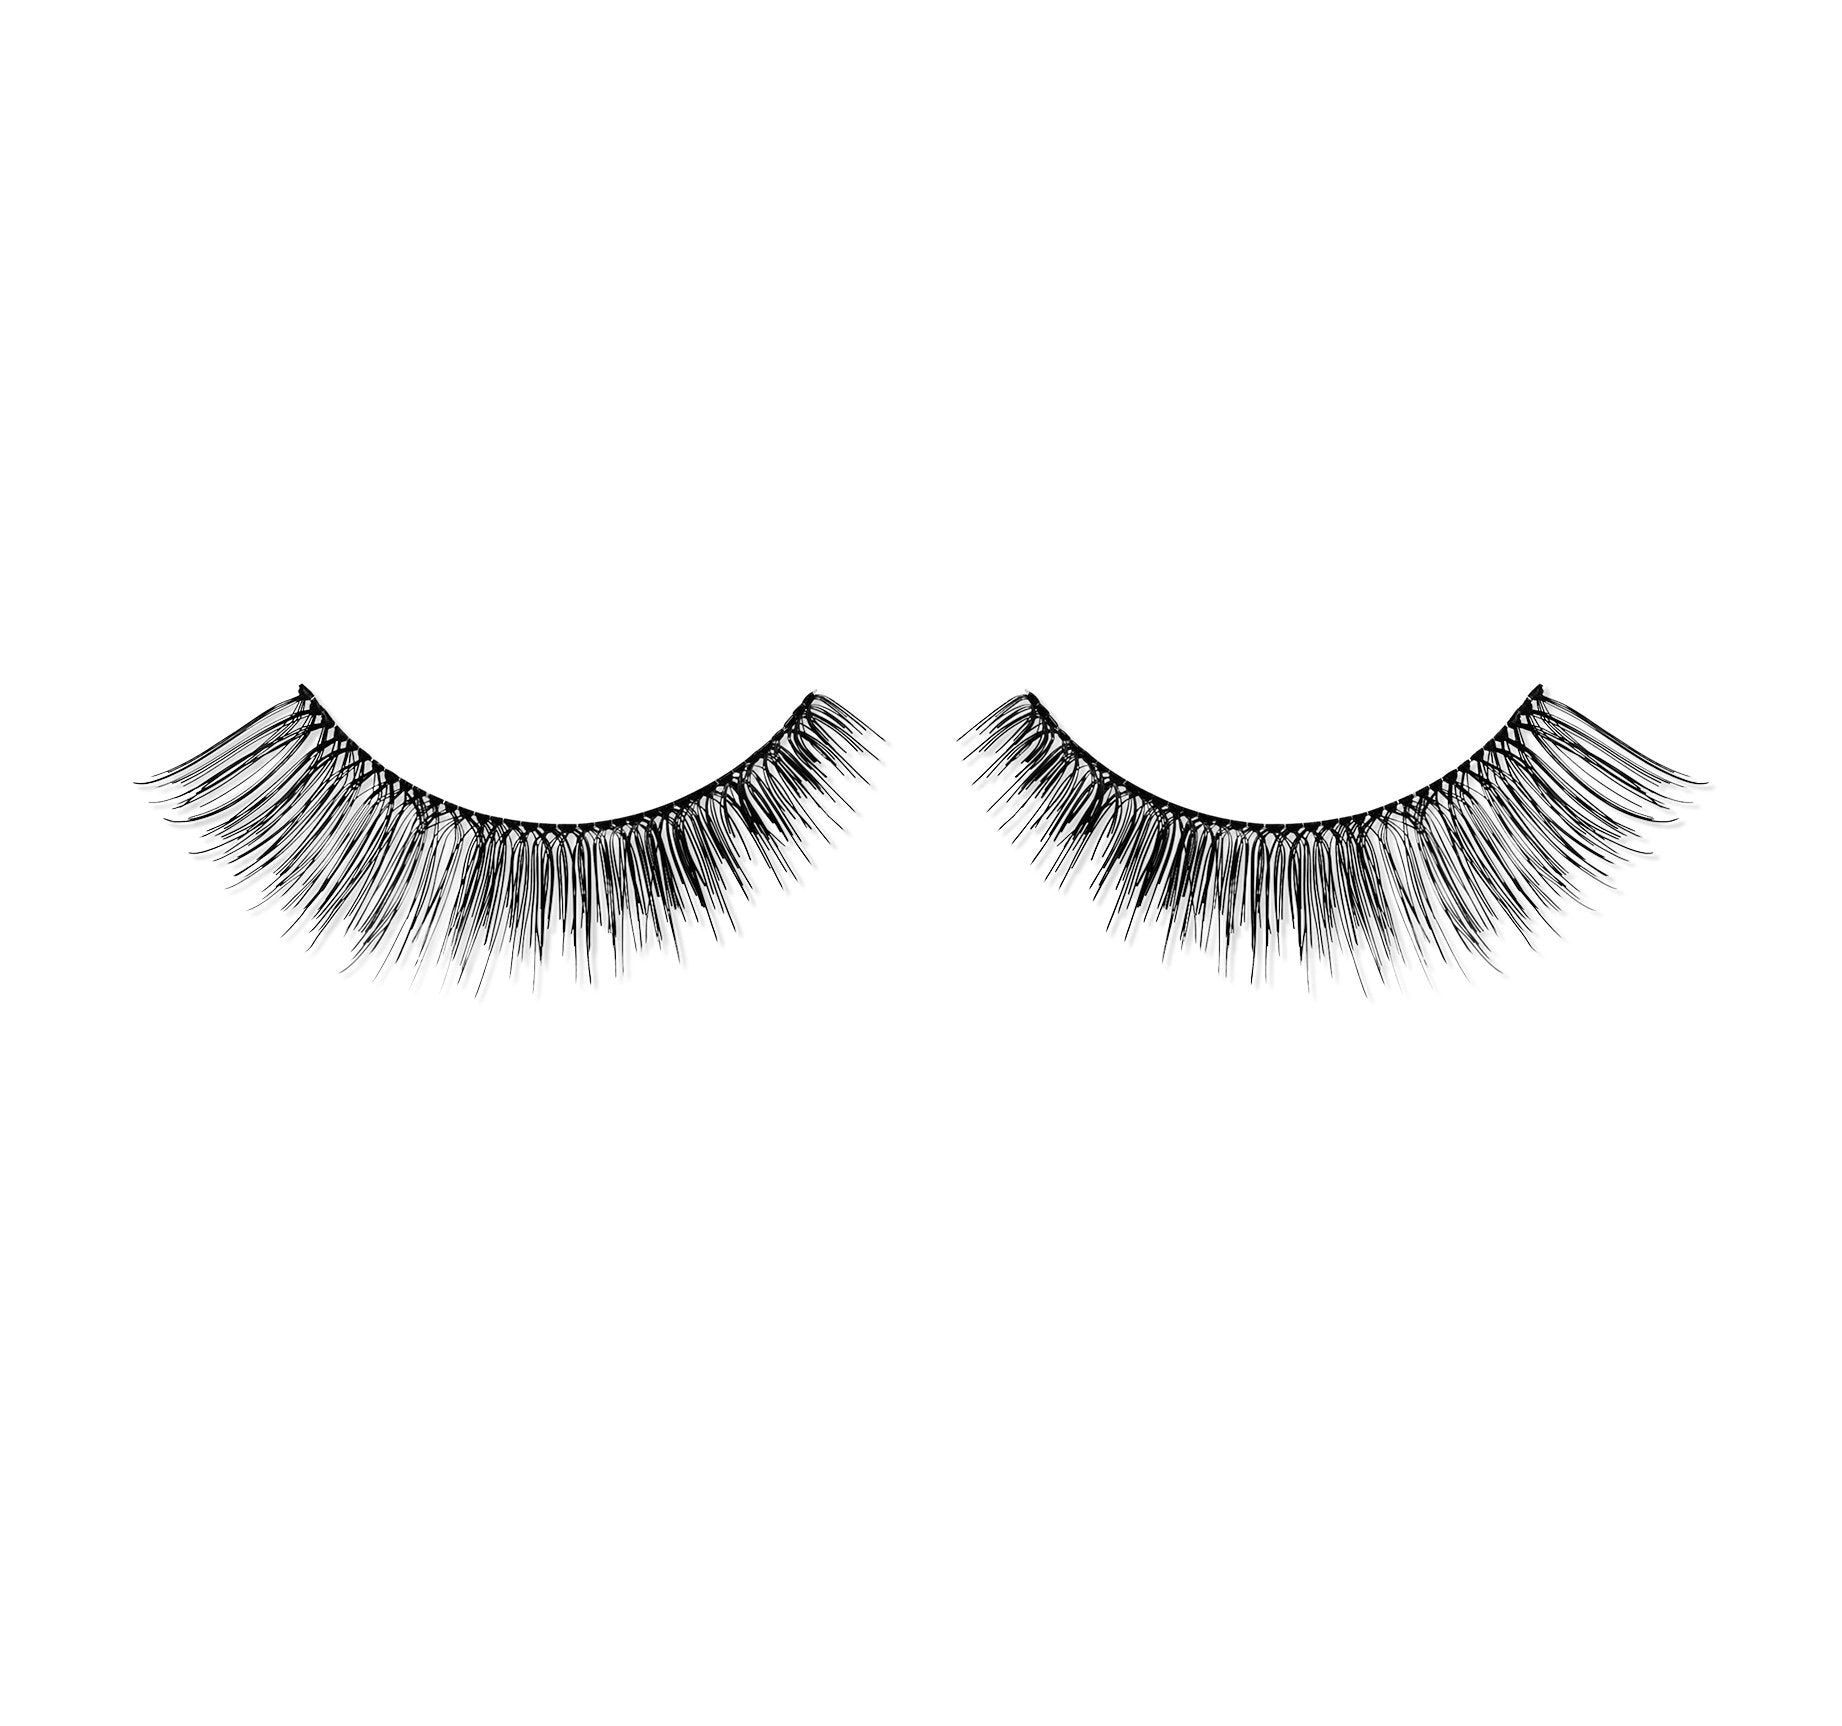 MORPHE LASHES - PASADENA, view larger image